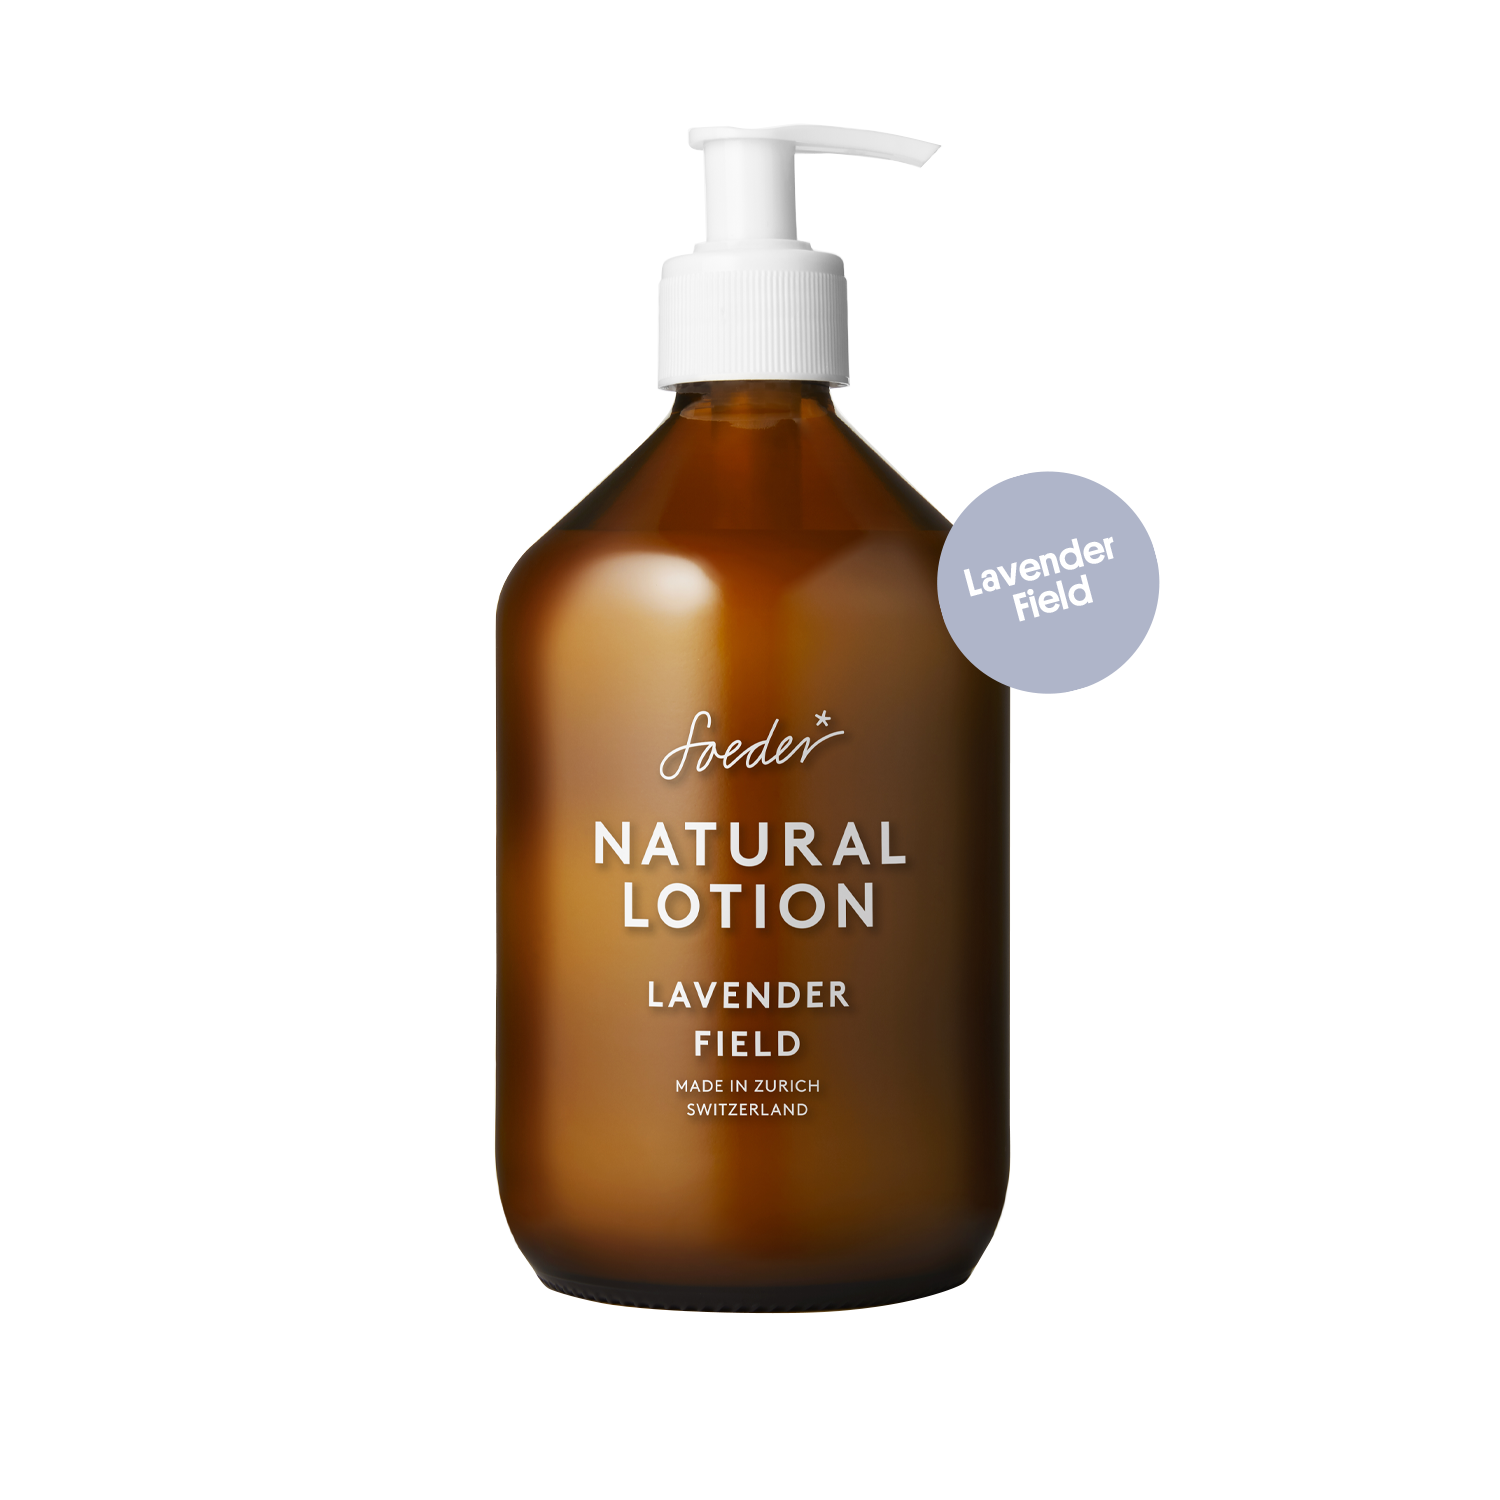 Natural Lotion – Lavender Field 500 ml von soeder*